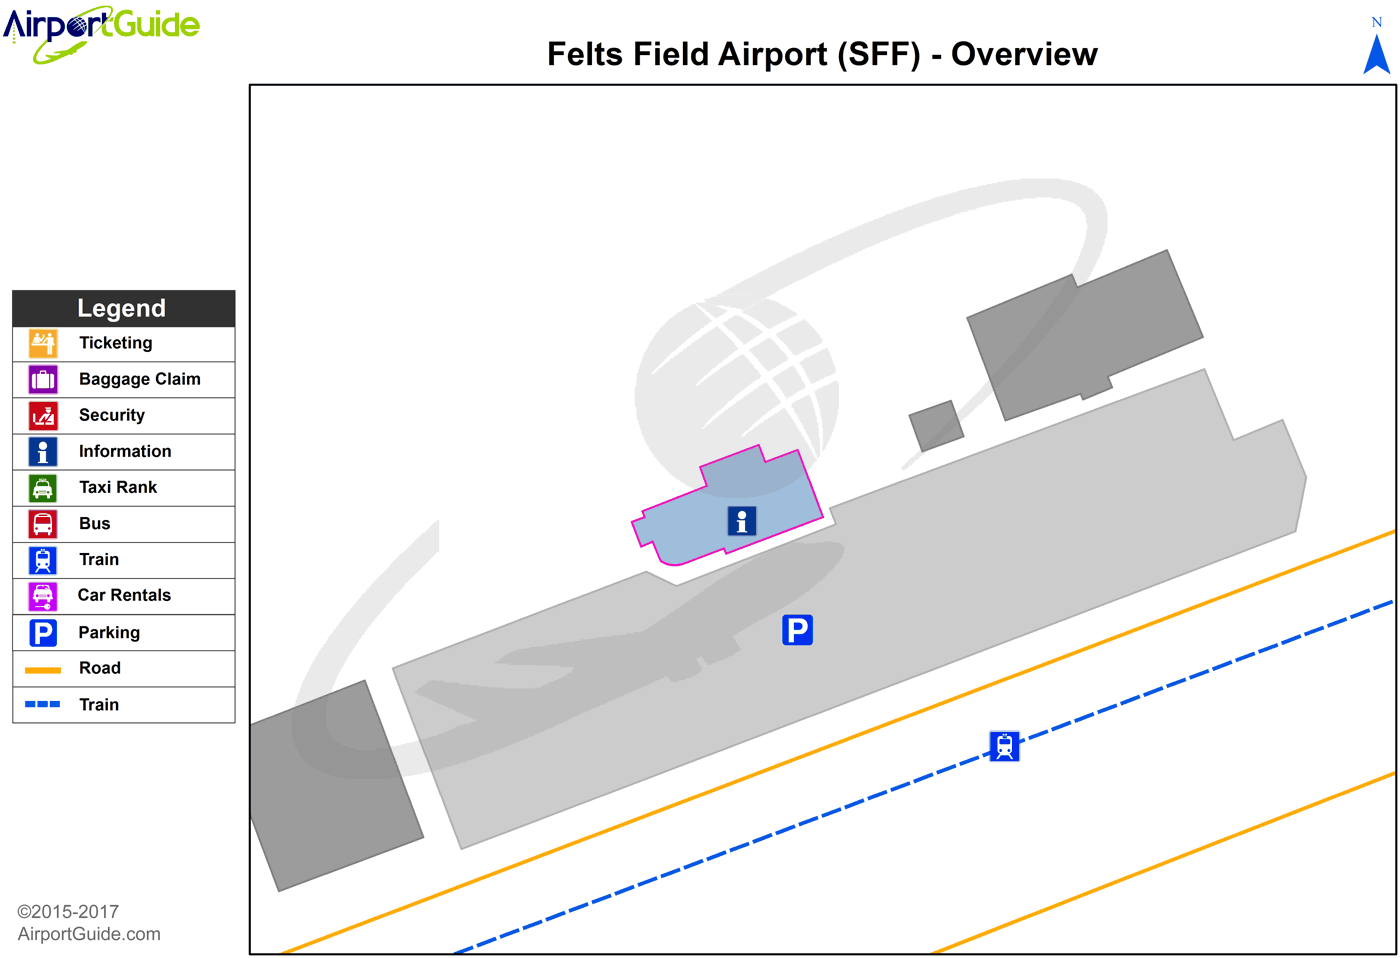 Spokane - Felts Field (SFF) Airport Terminal Map - Overview